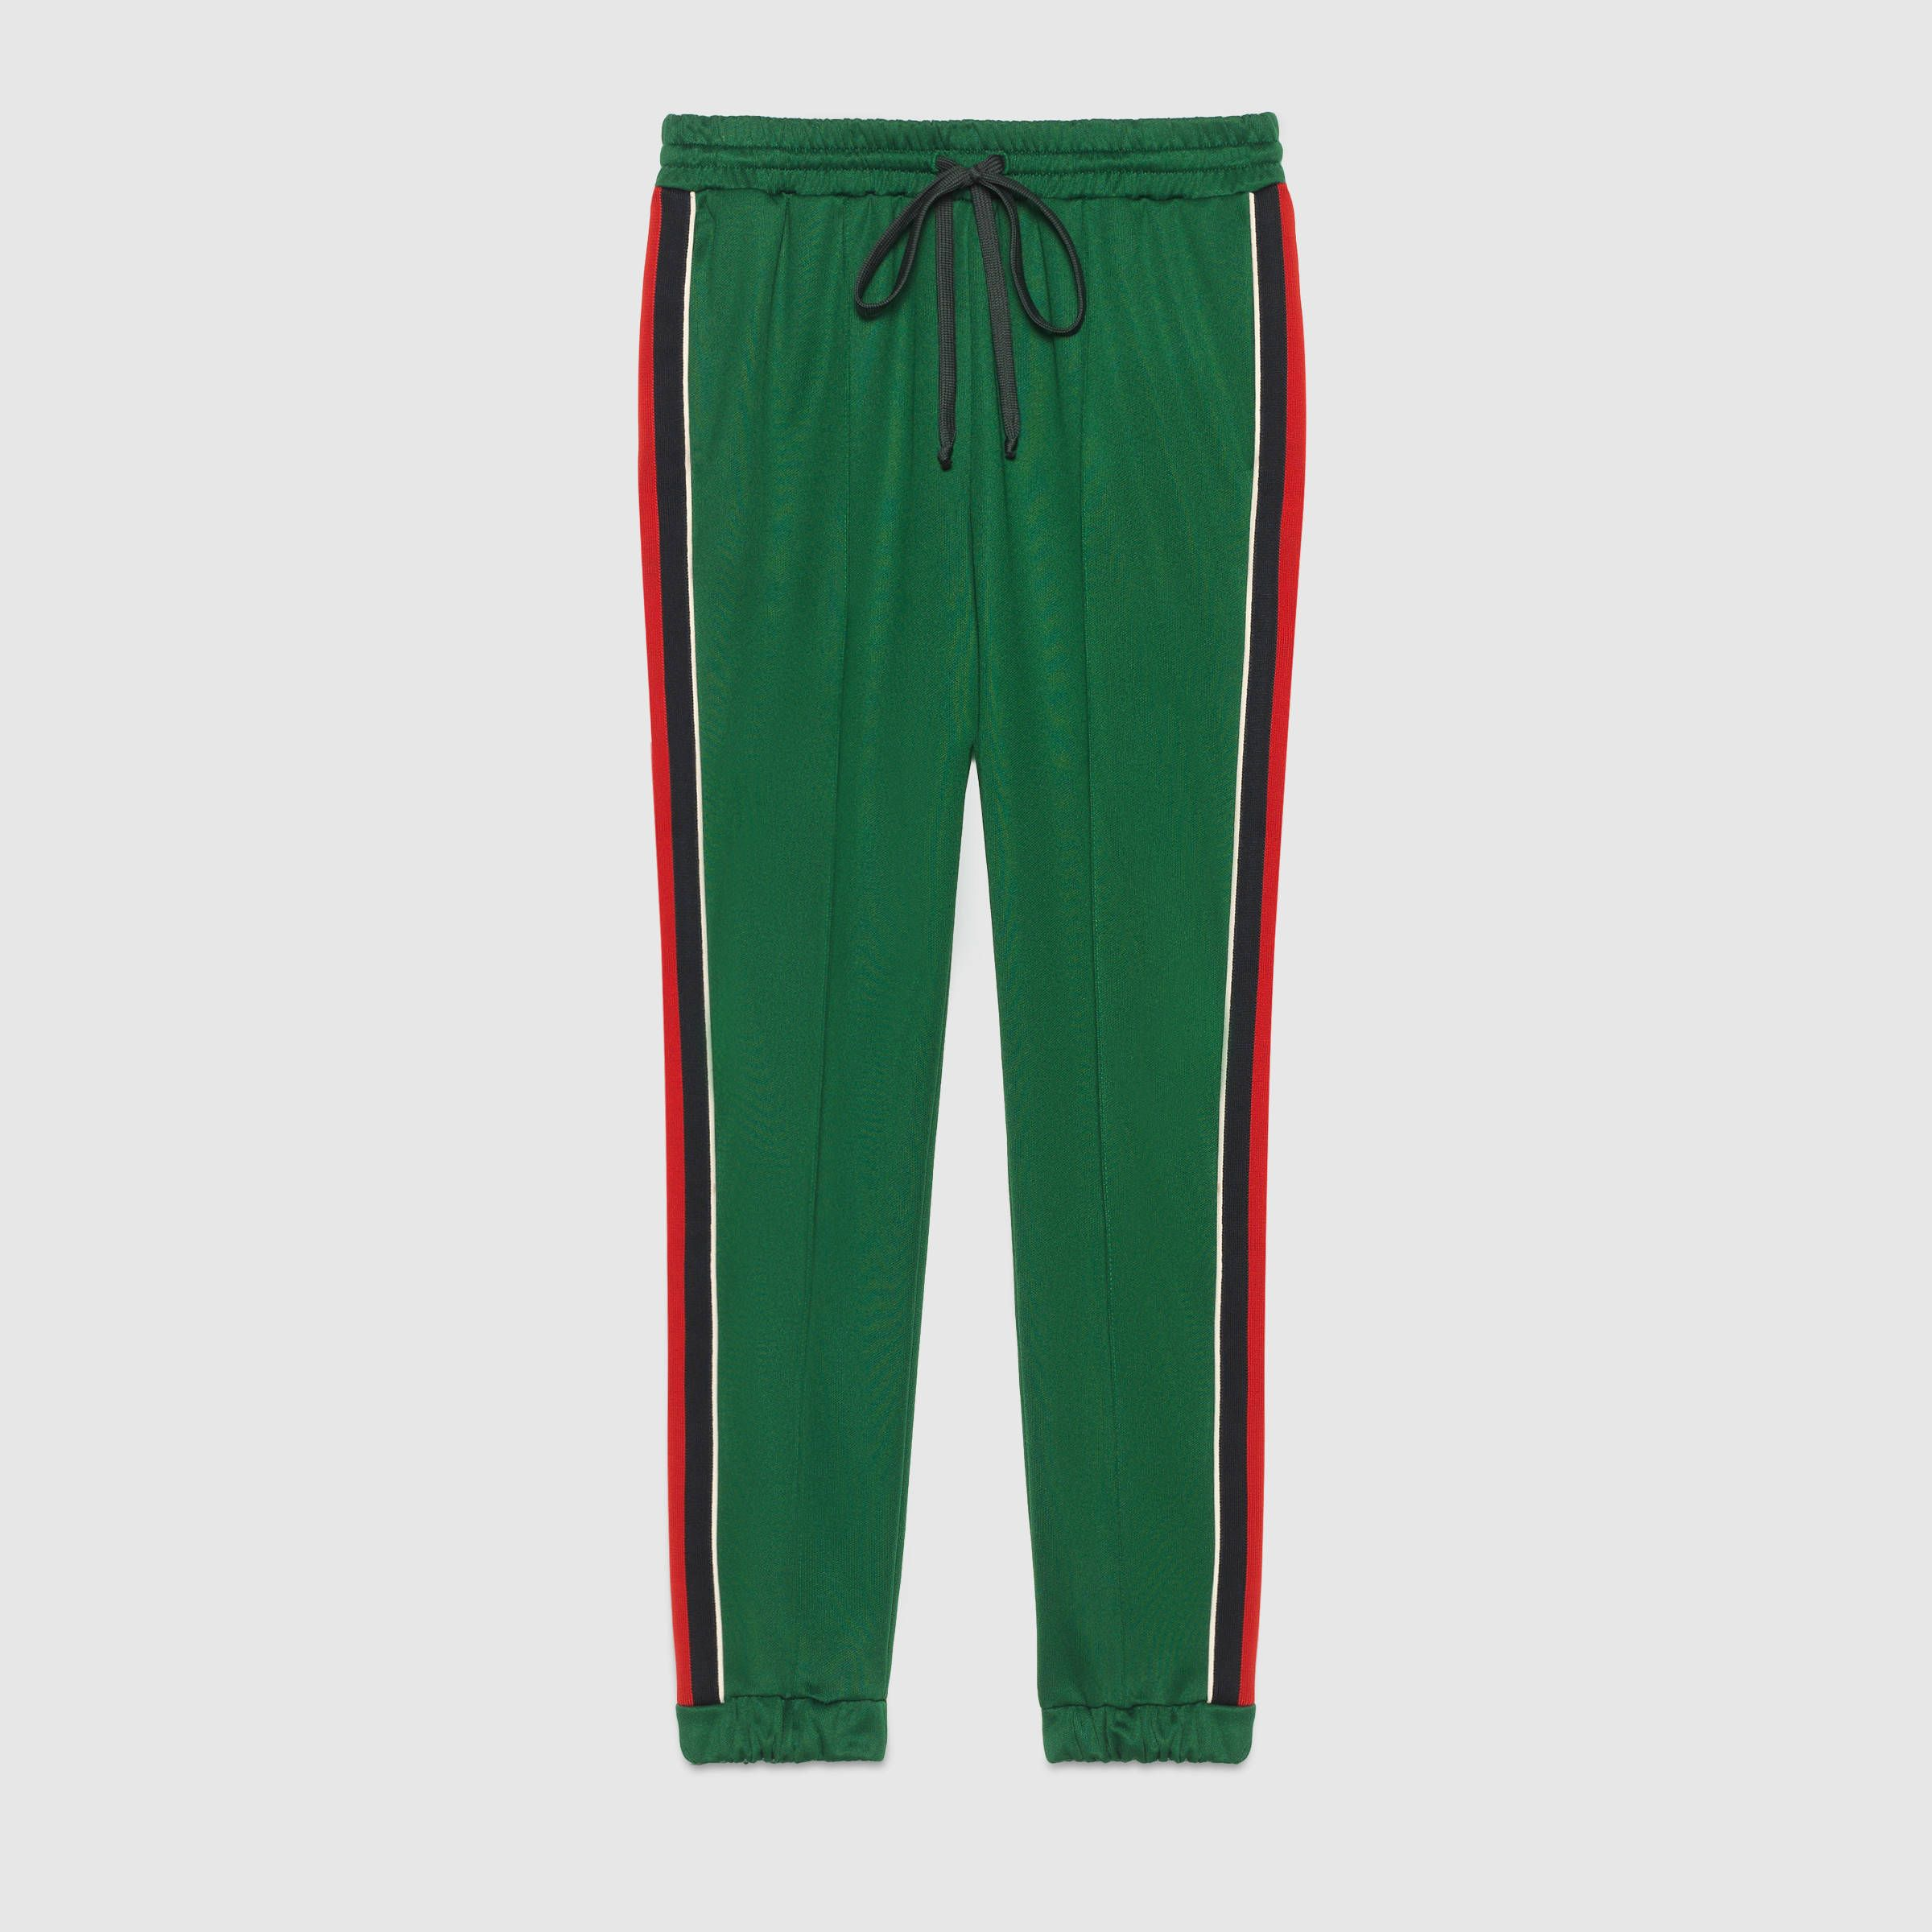 gucci pants. shop the technical jersey jogging pant by gucci. a in green. activewear is an important theme continued throughout gucci pants